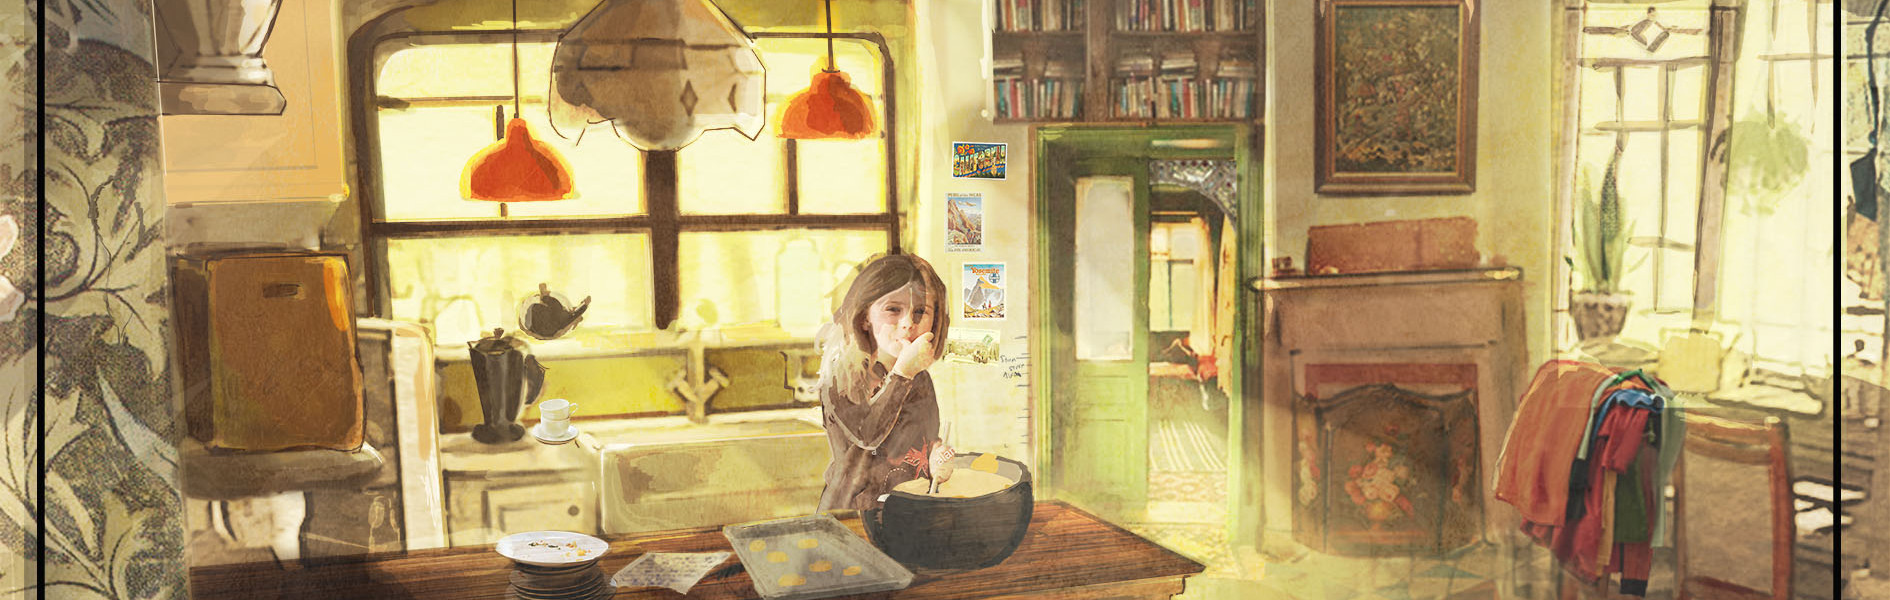 Into the Woods - Kitchen visual